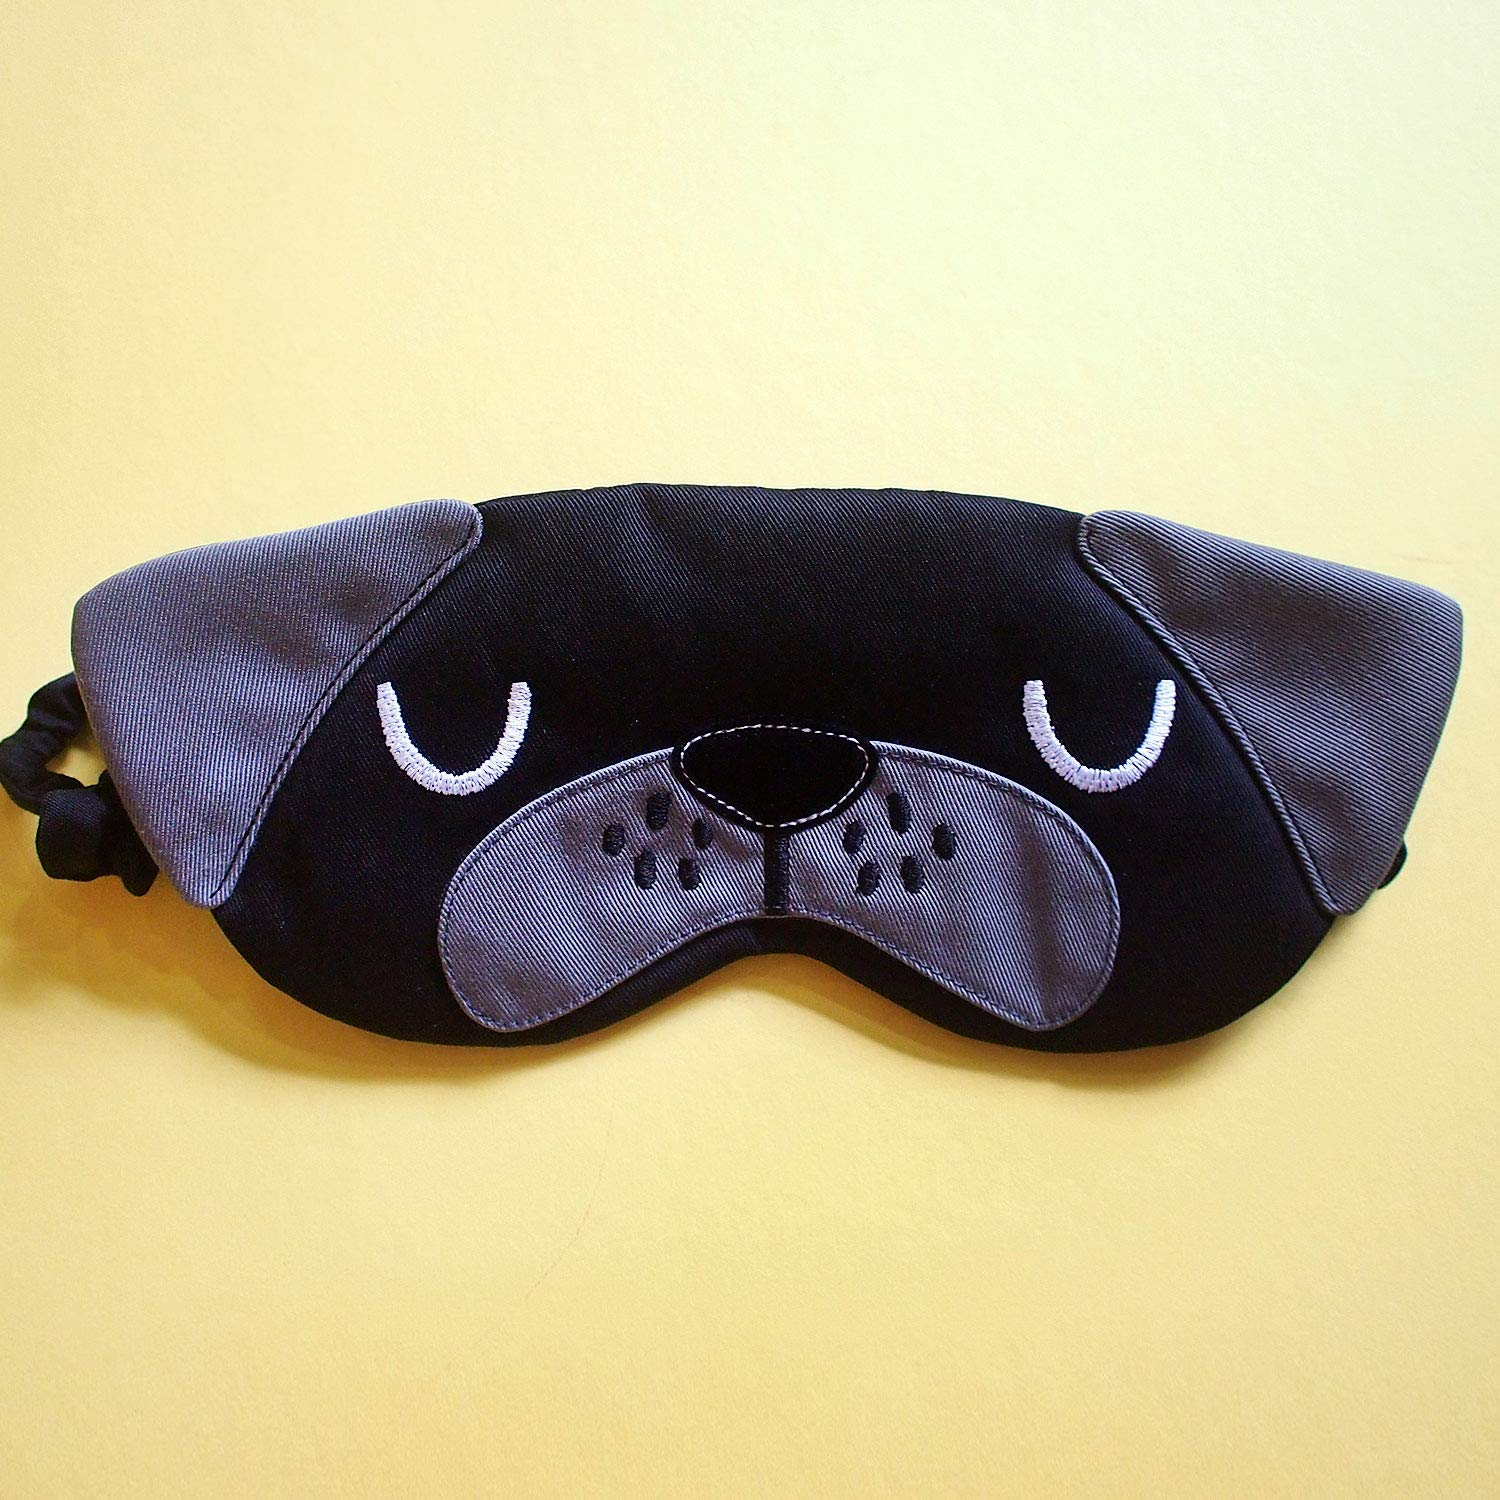 Amazon com black pug french bulldog sleep mask padded flight eye cover cute blindfold comic con cosplay gifts handmade